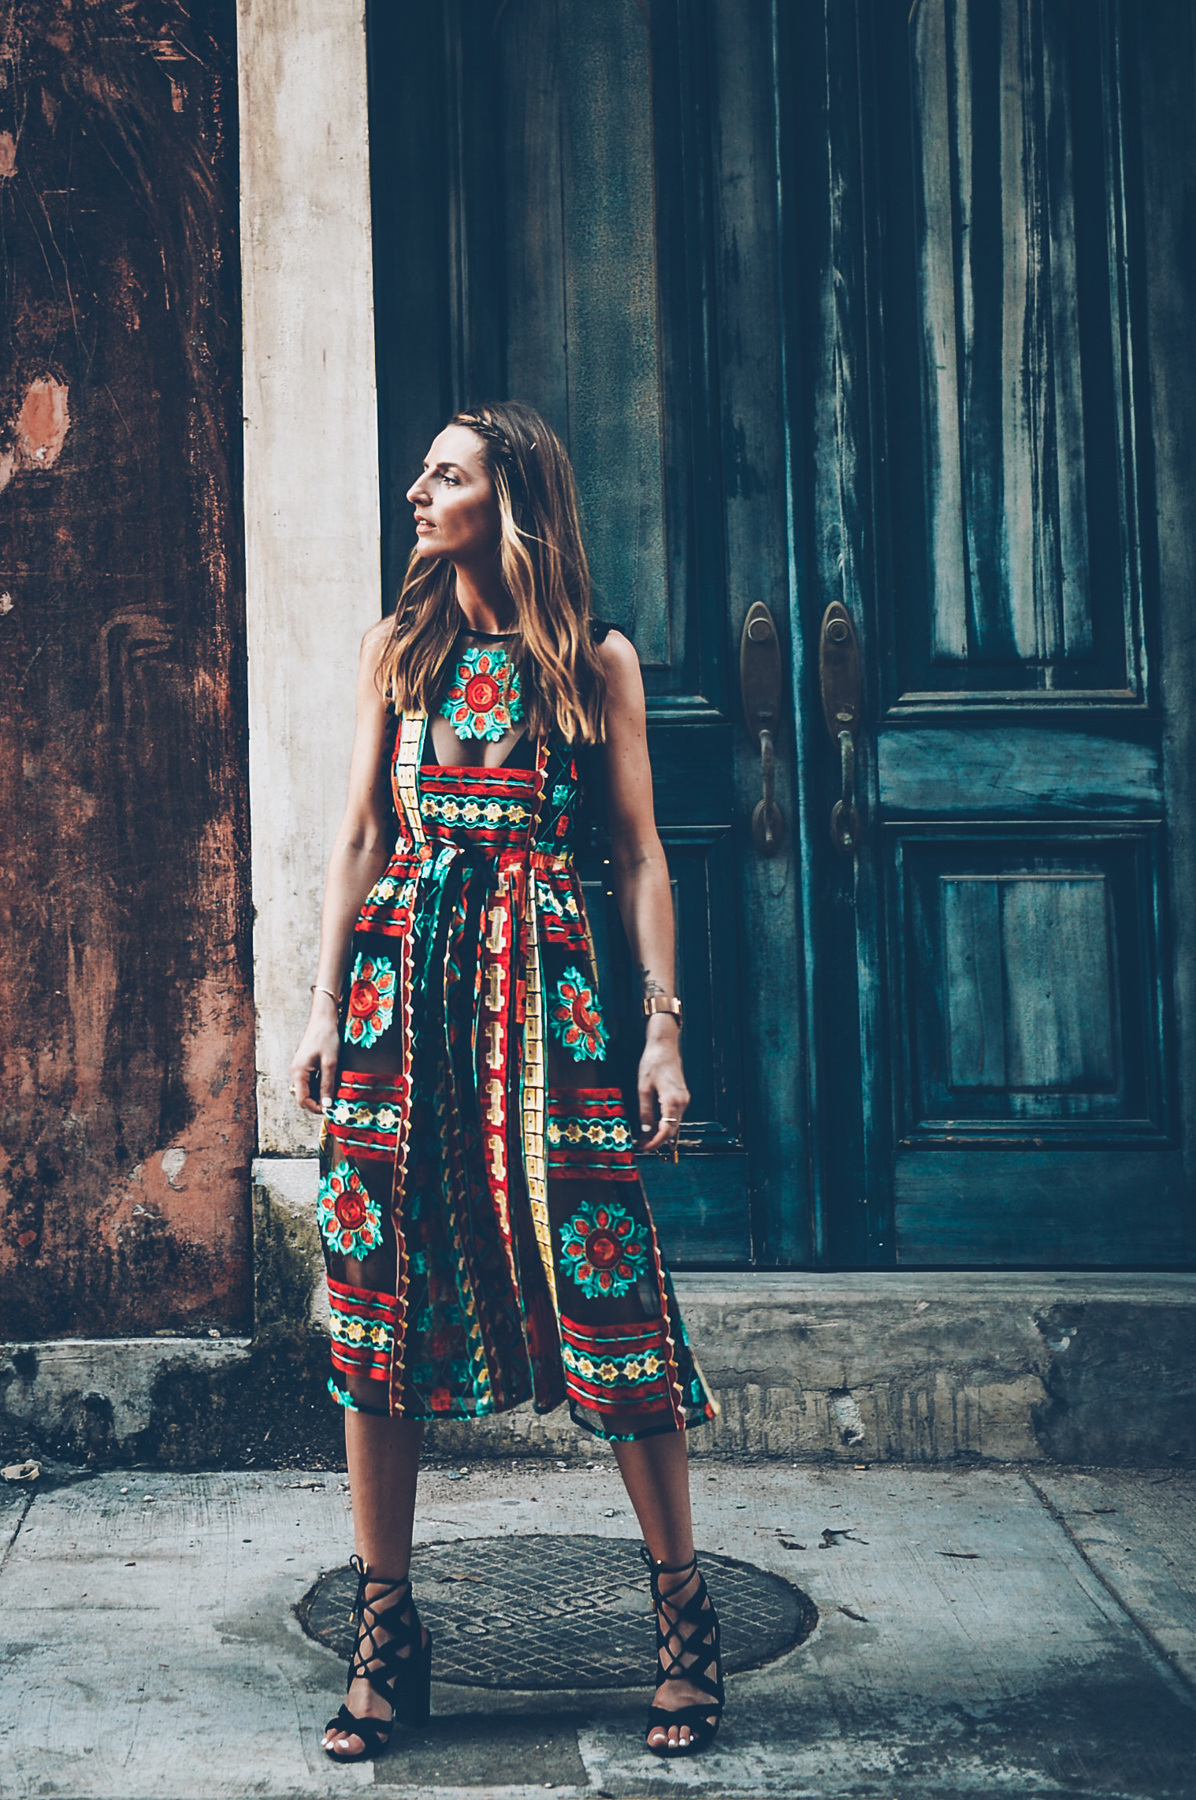 Jess Kirby wearing an embroidered dress from ANthropologie in Casco Viejo Panama City